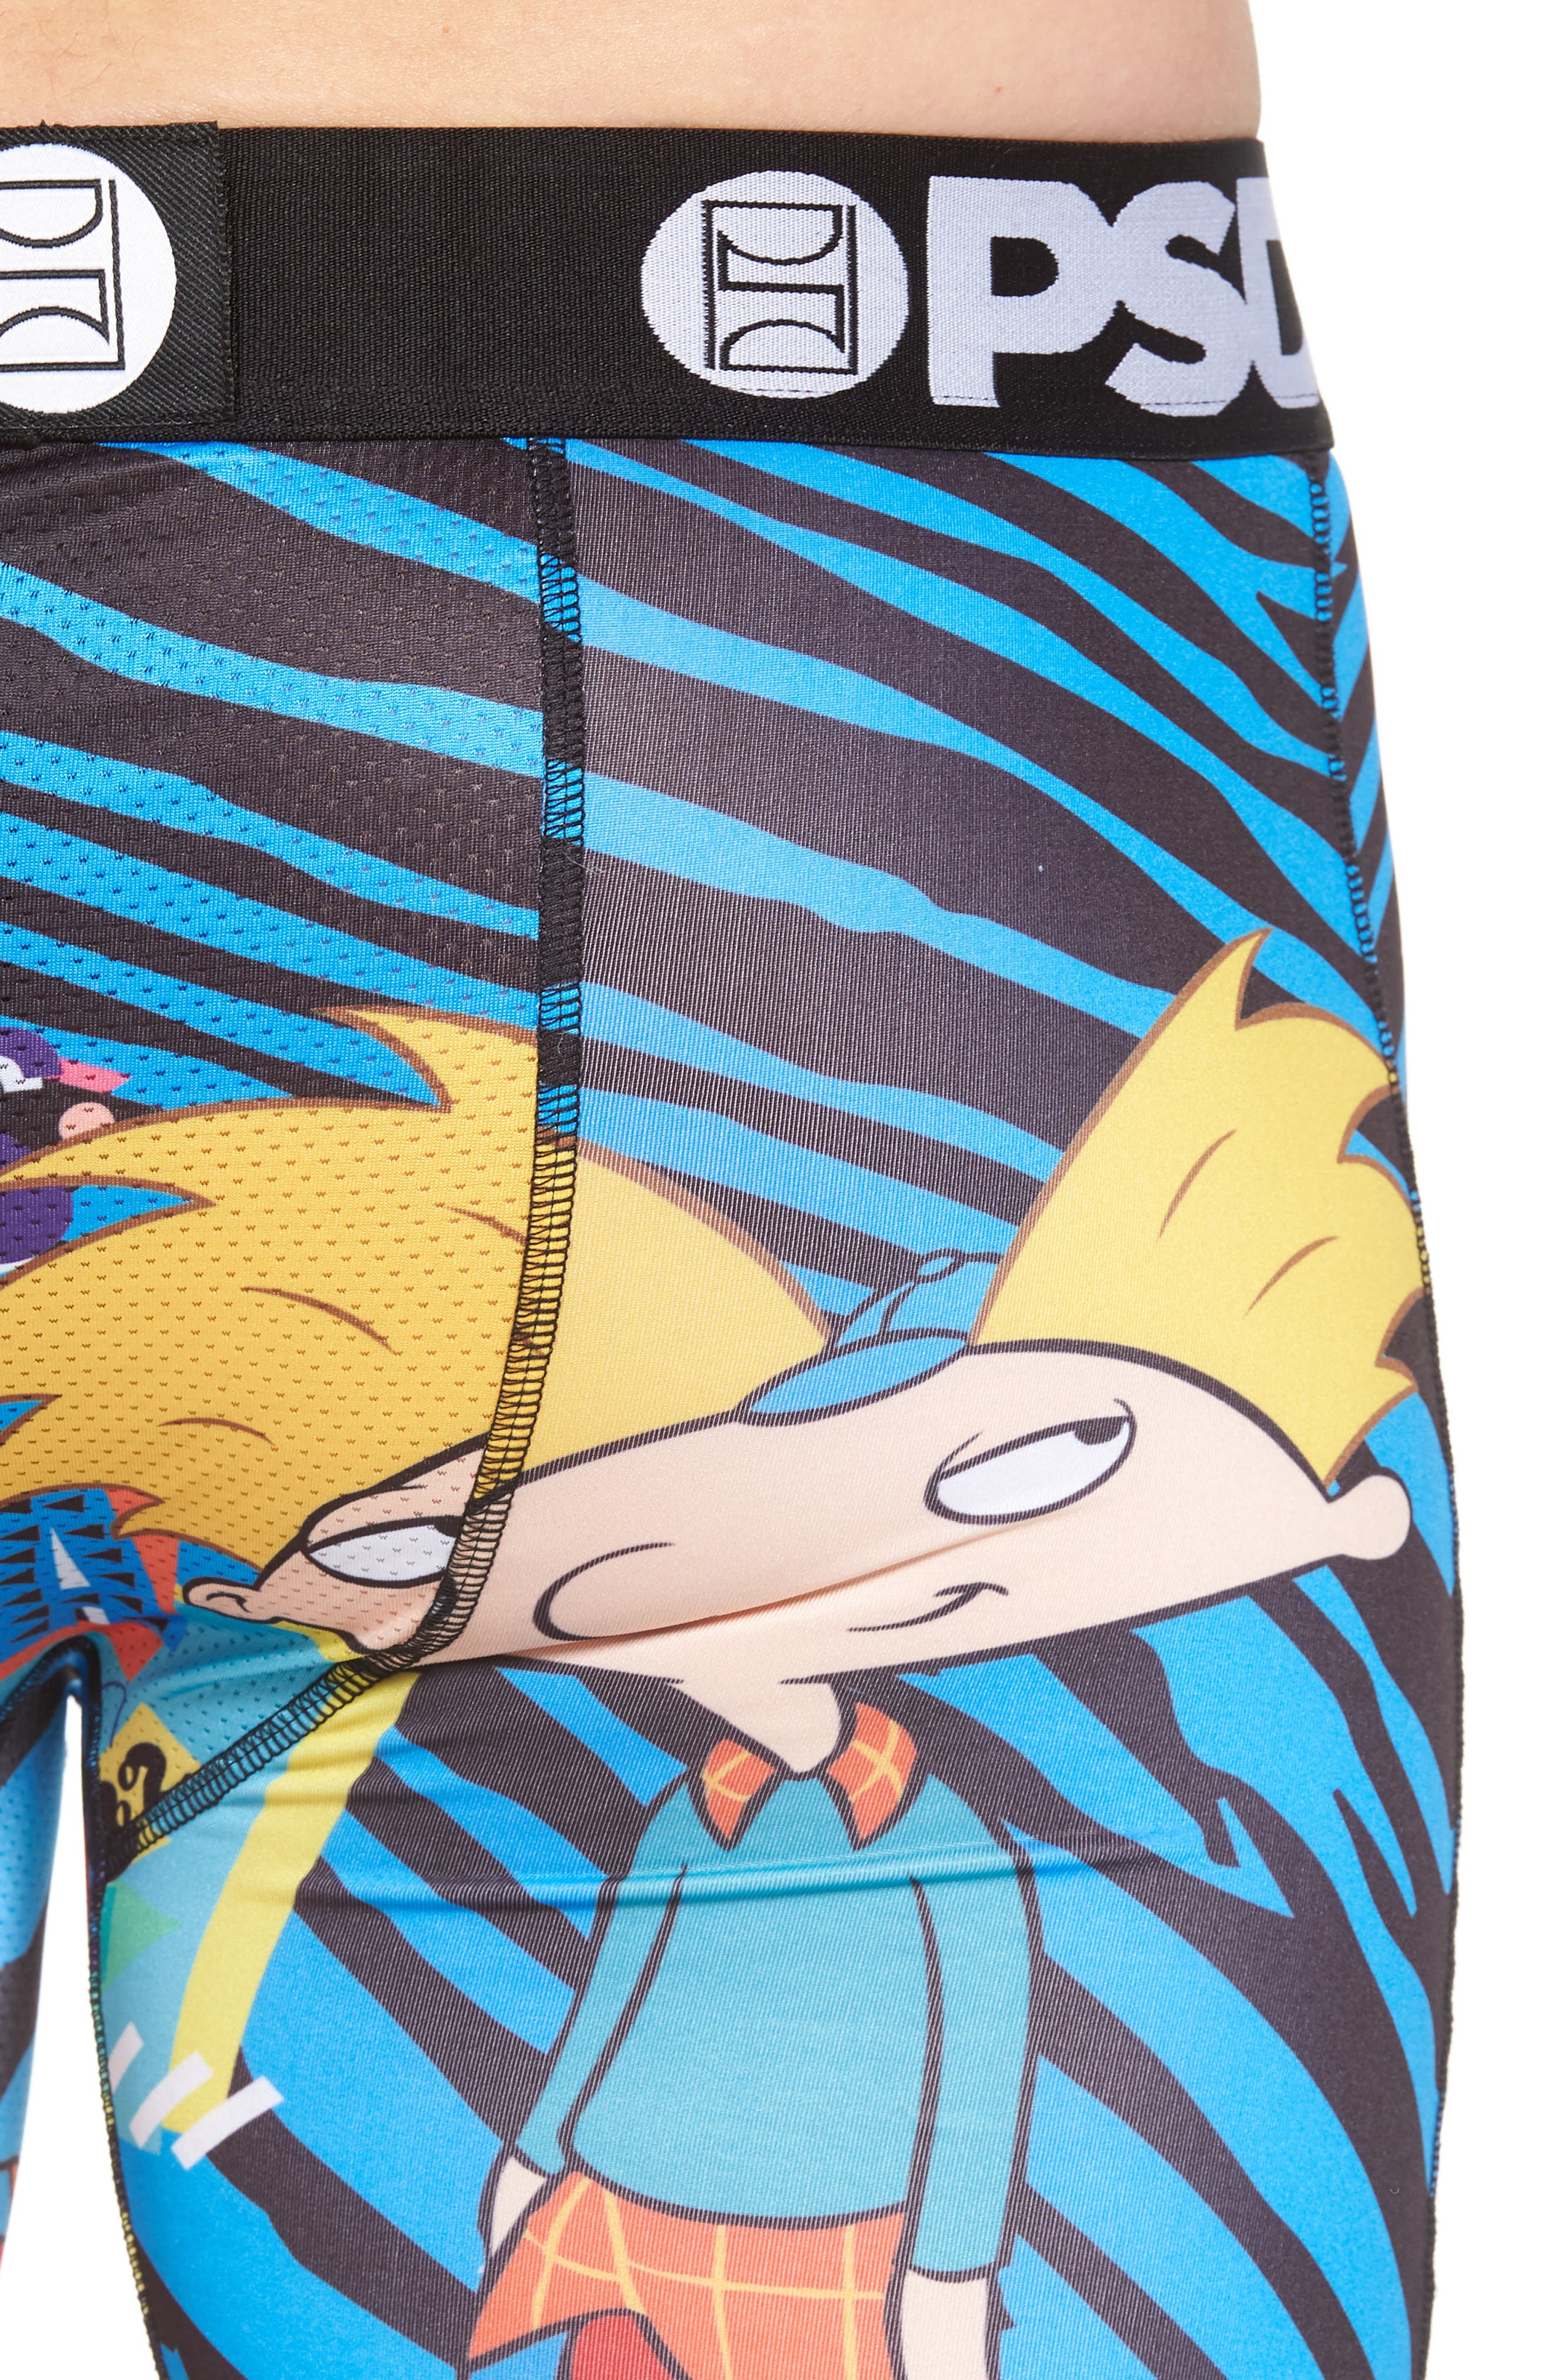 Hey Arnold Boxer Briefs,                             Alternate thumbnail 5, color,                             400